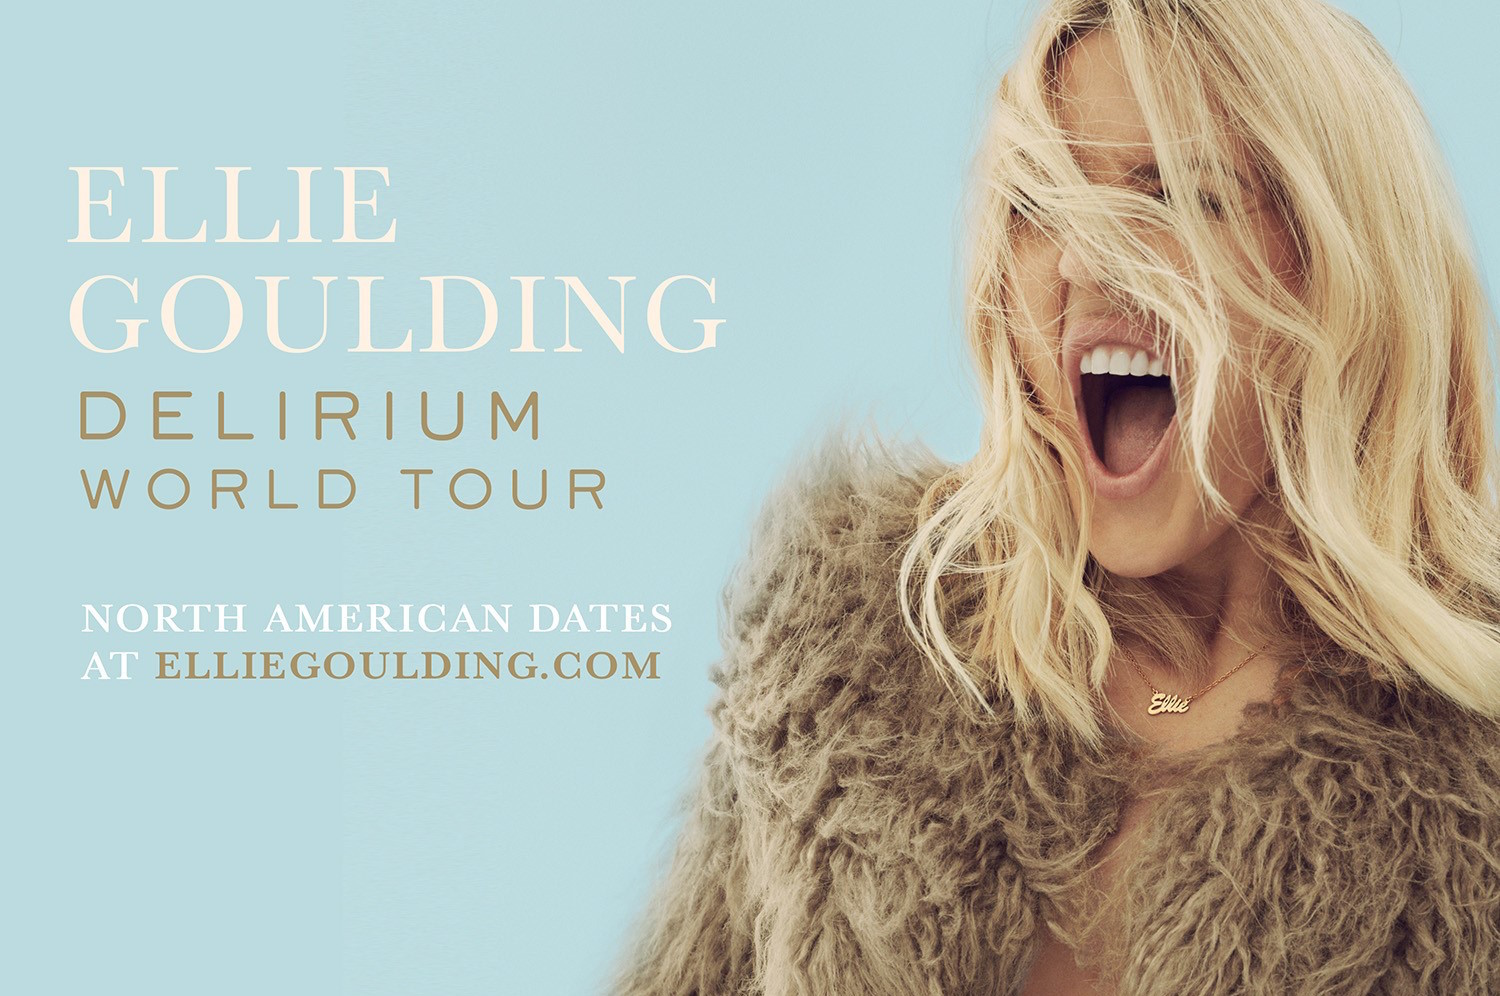 English pop singer Ellie Goulding will perform May 11 at the Sands Bethlehem Event Center in Bethlehem.  (Courtesy Image)